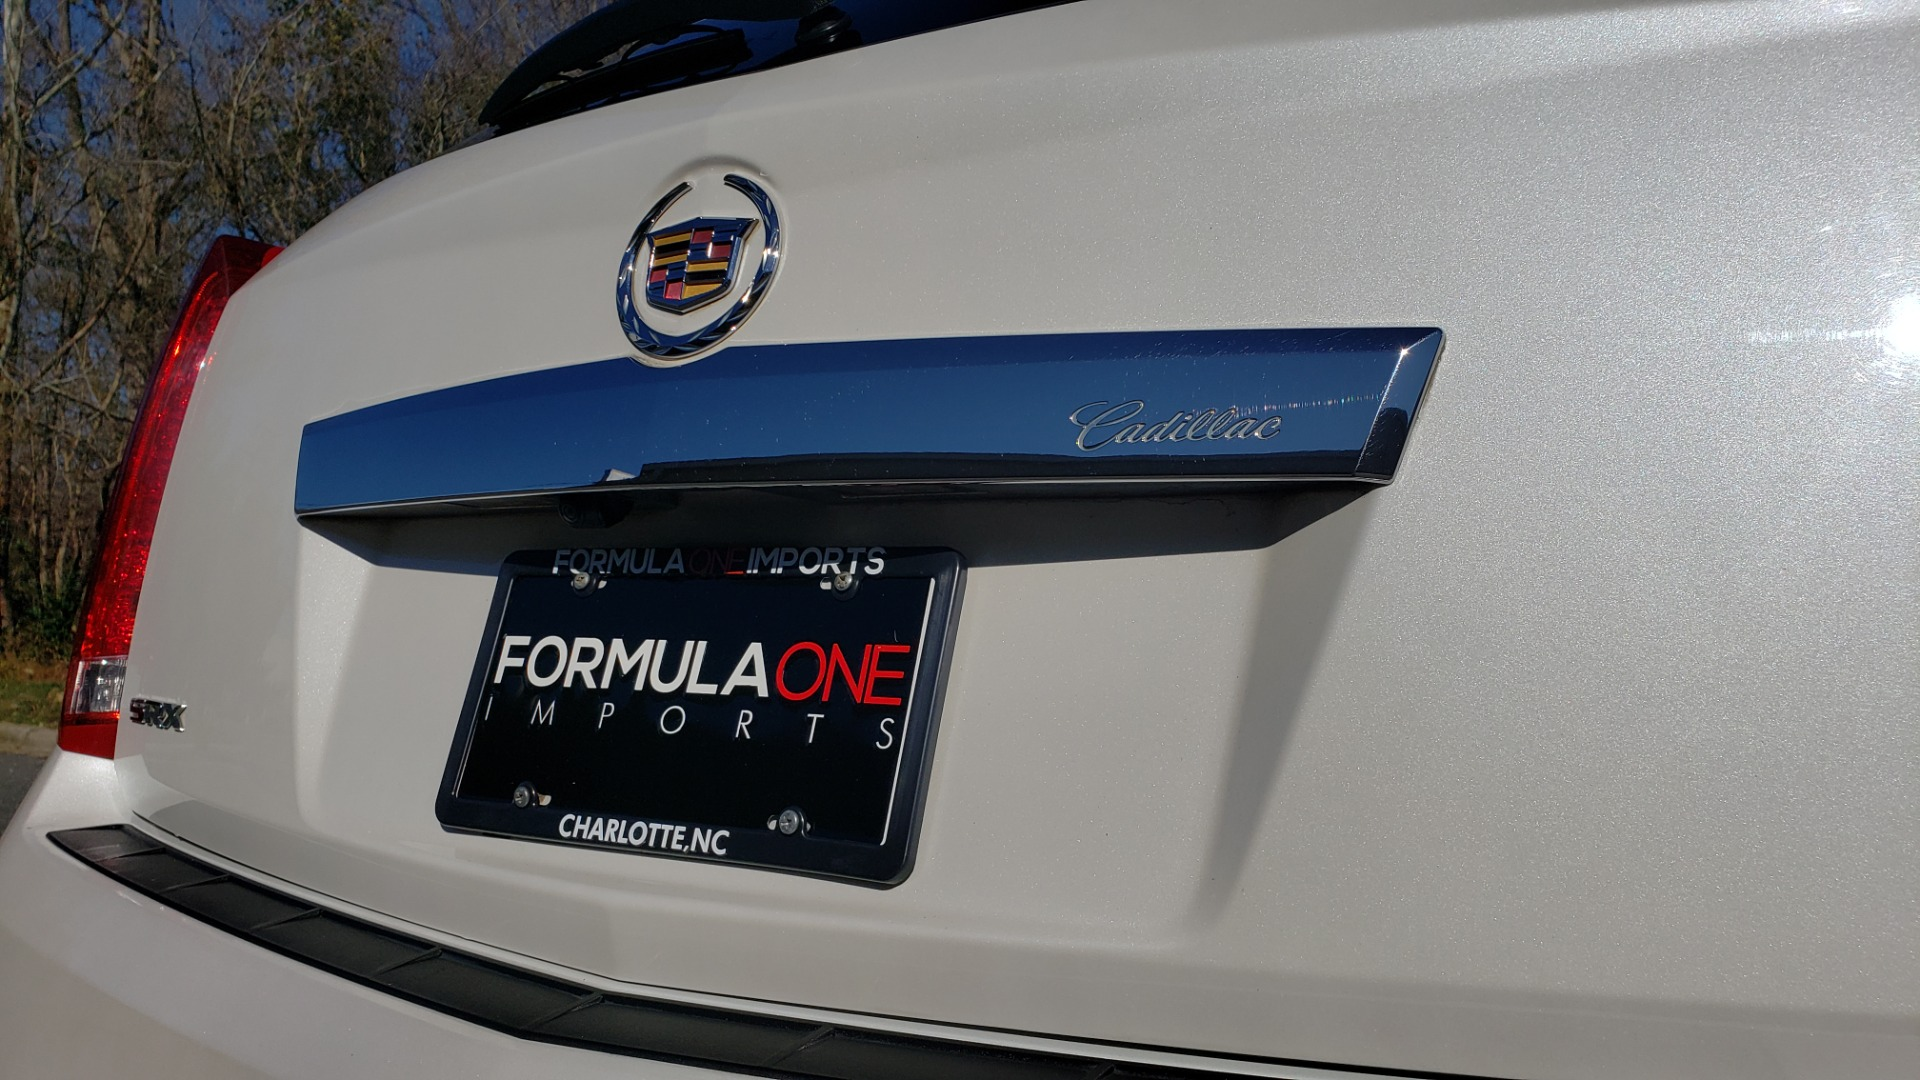 Used 2011 Cadillac SRX PERFORMANCE COLLECTION / ENT SYS / BOSE / REARVIEW for sale $15,999 at Formula Imports in Charlotte NC 28227 29